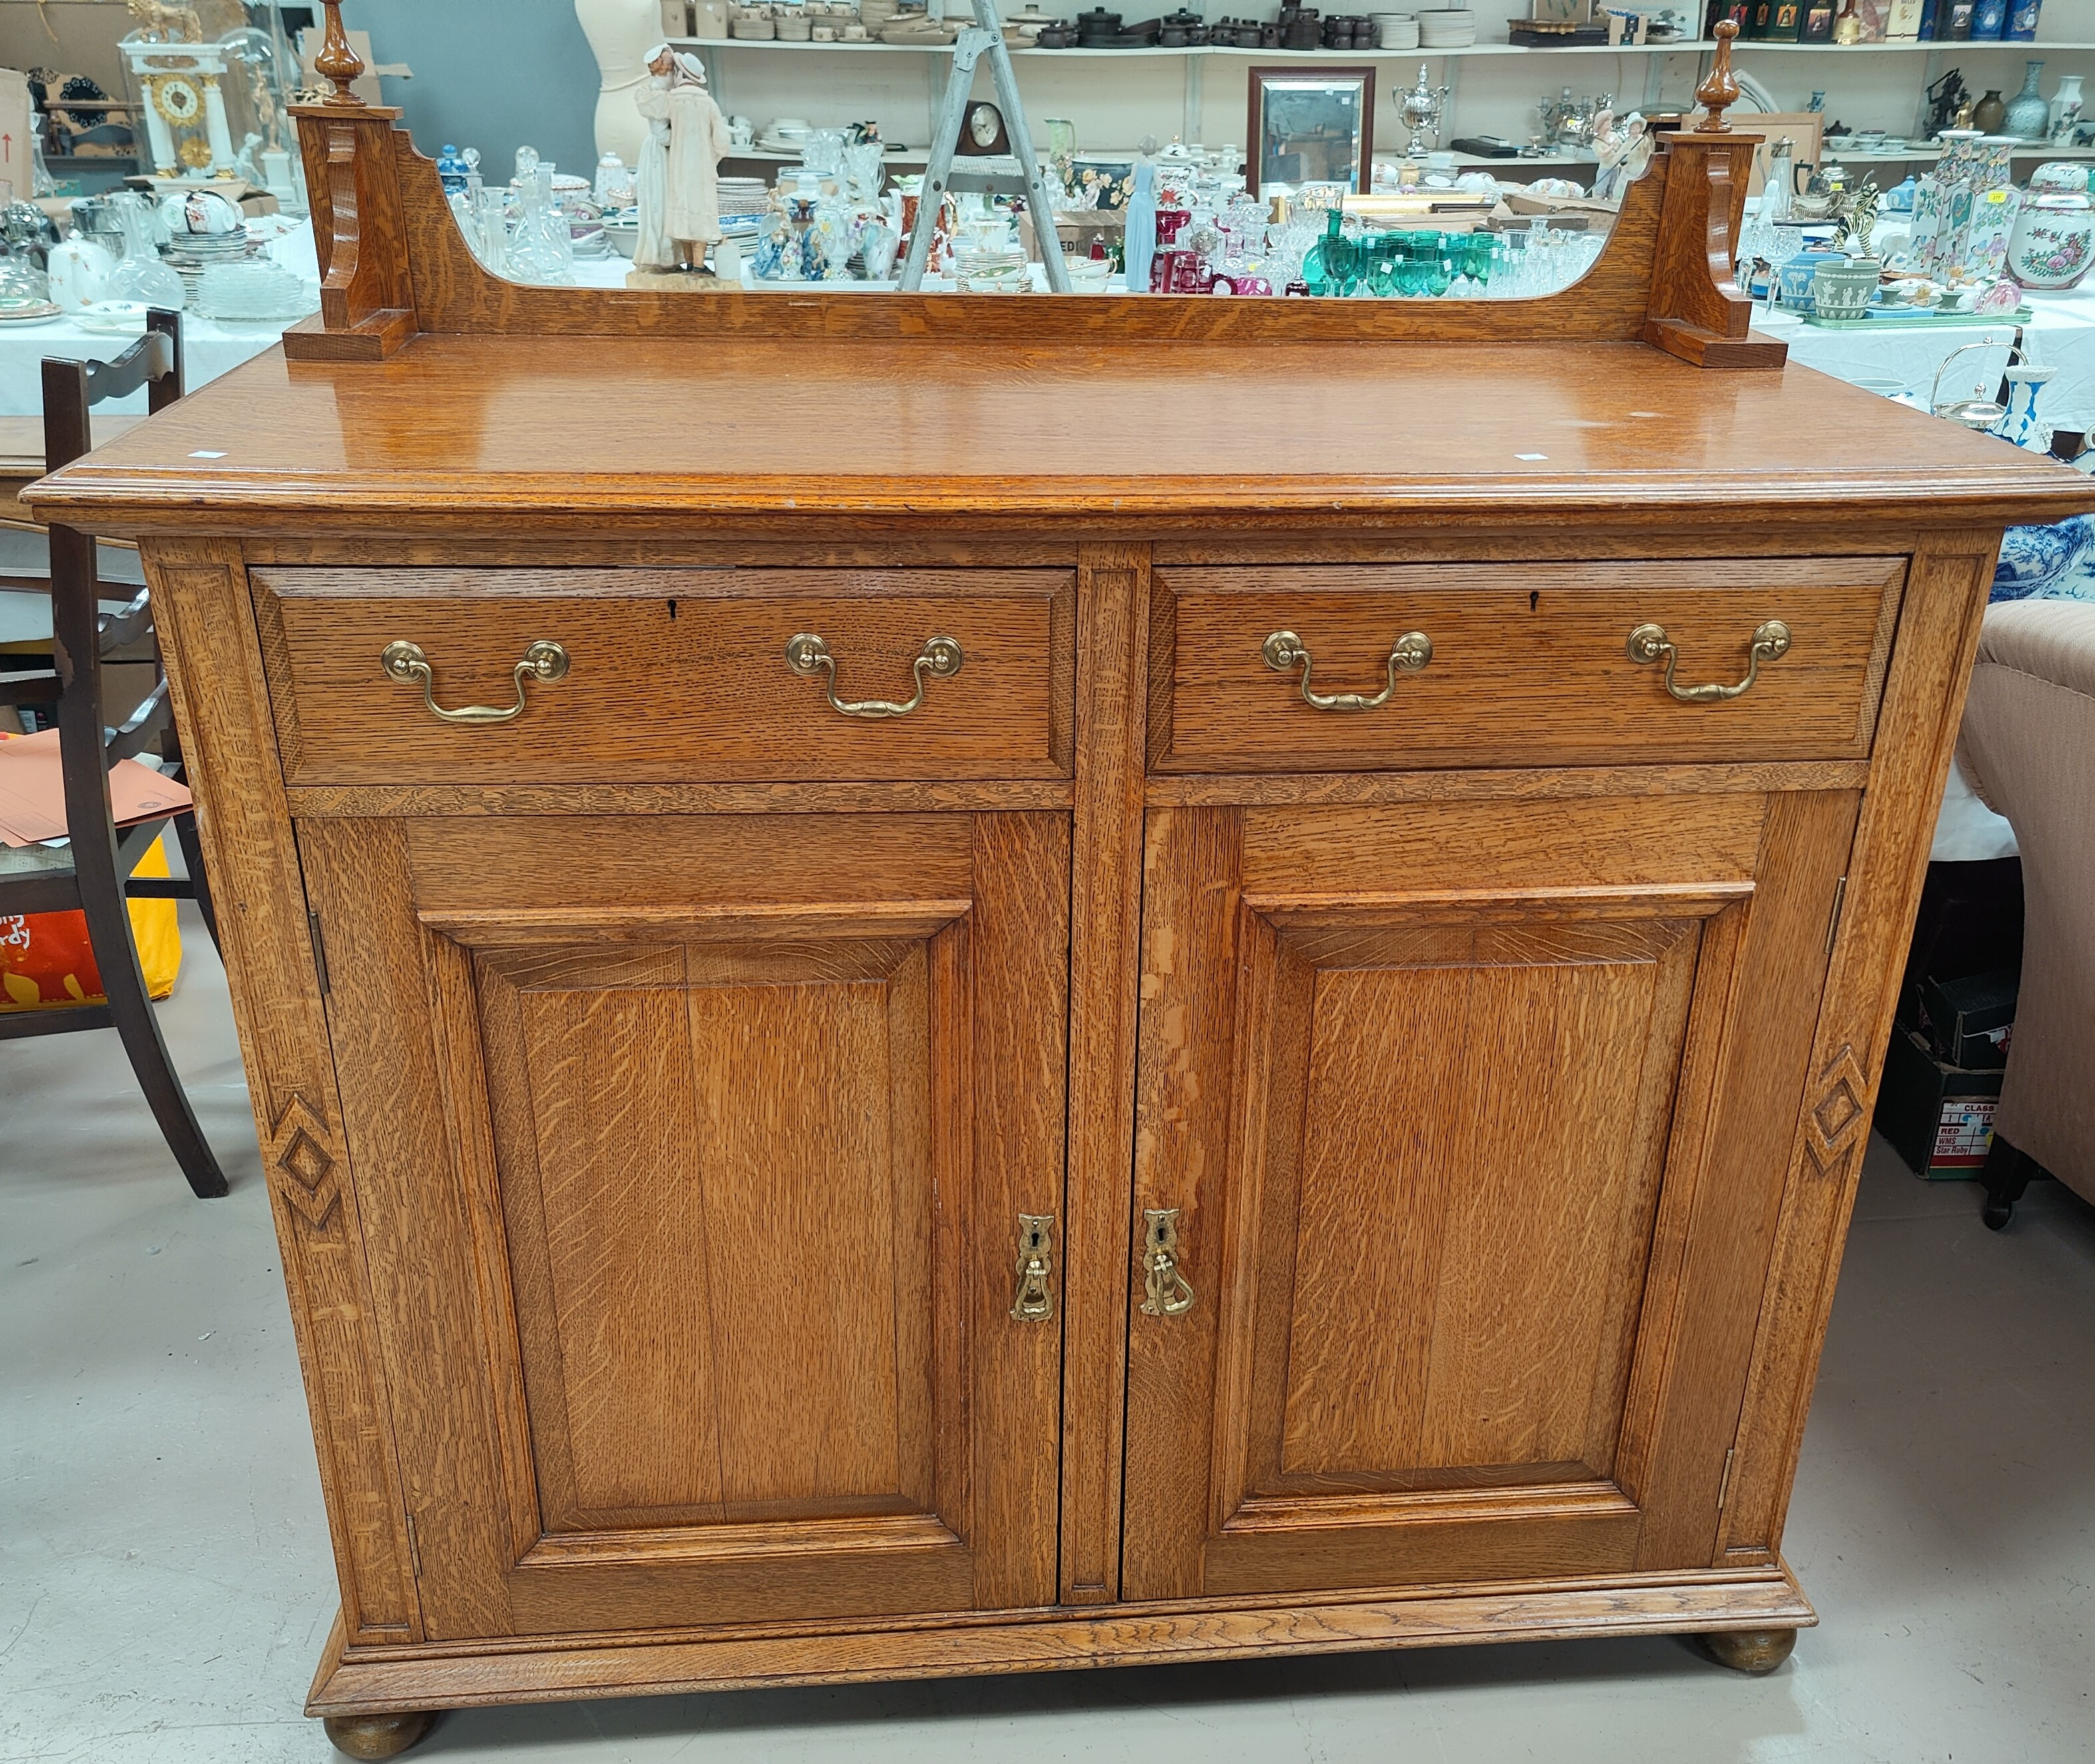 A large Golden Oak sideboard/side cabinet with doubled paneled doors, two drawers with brass drop